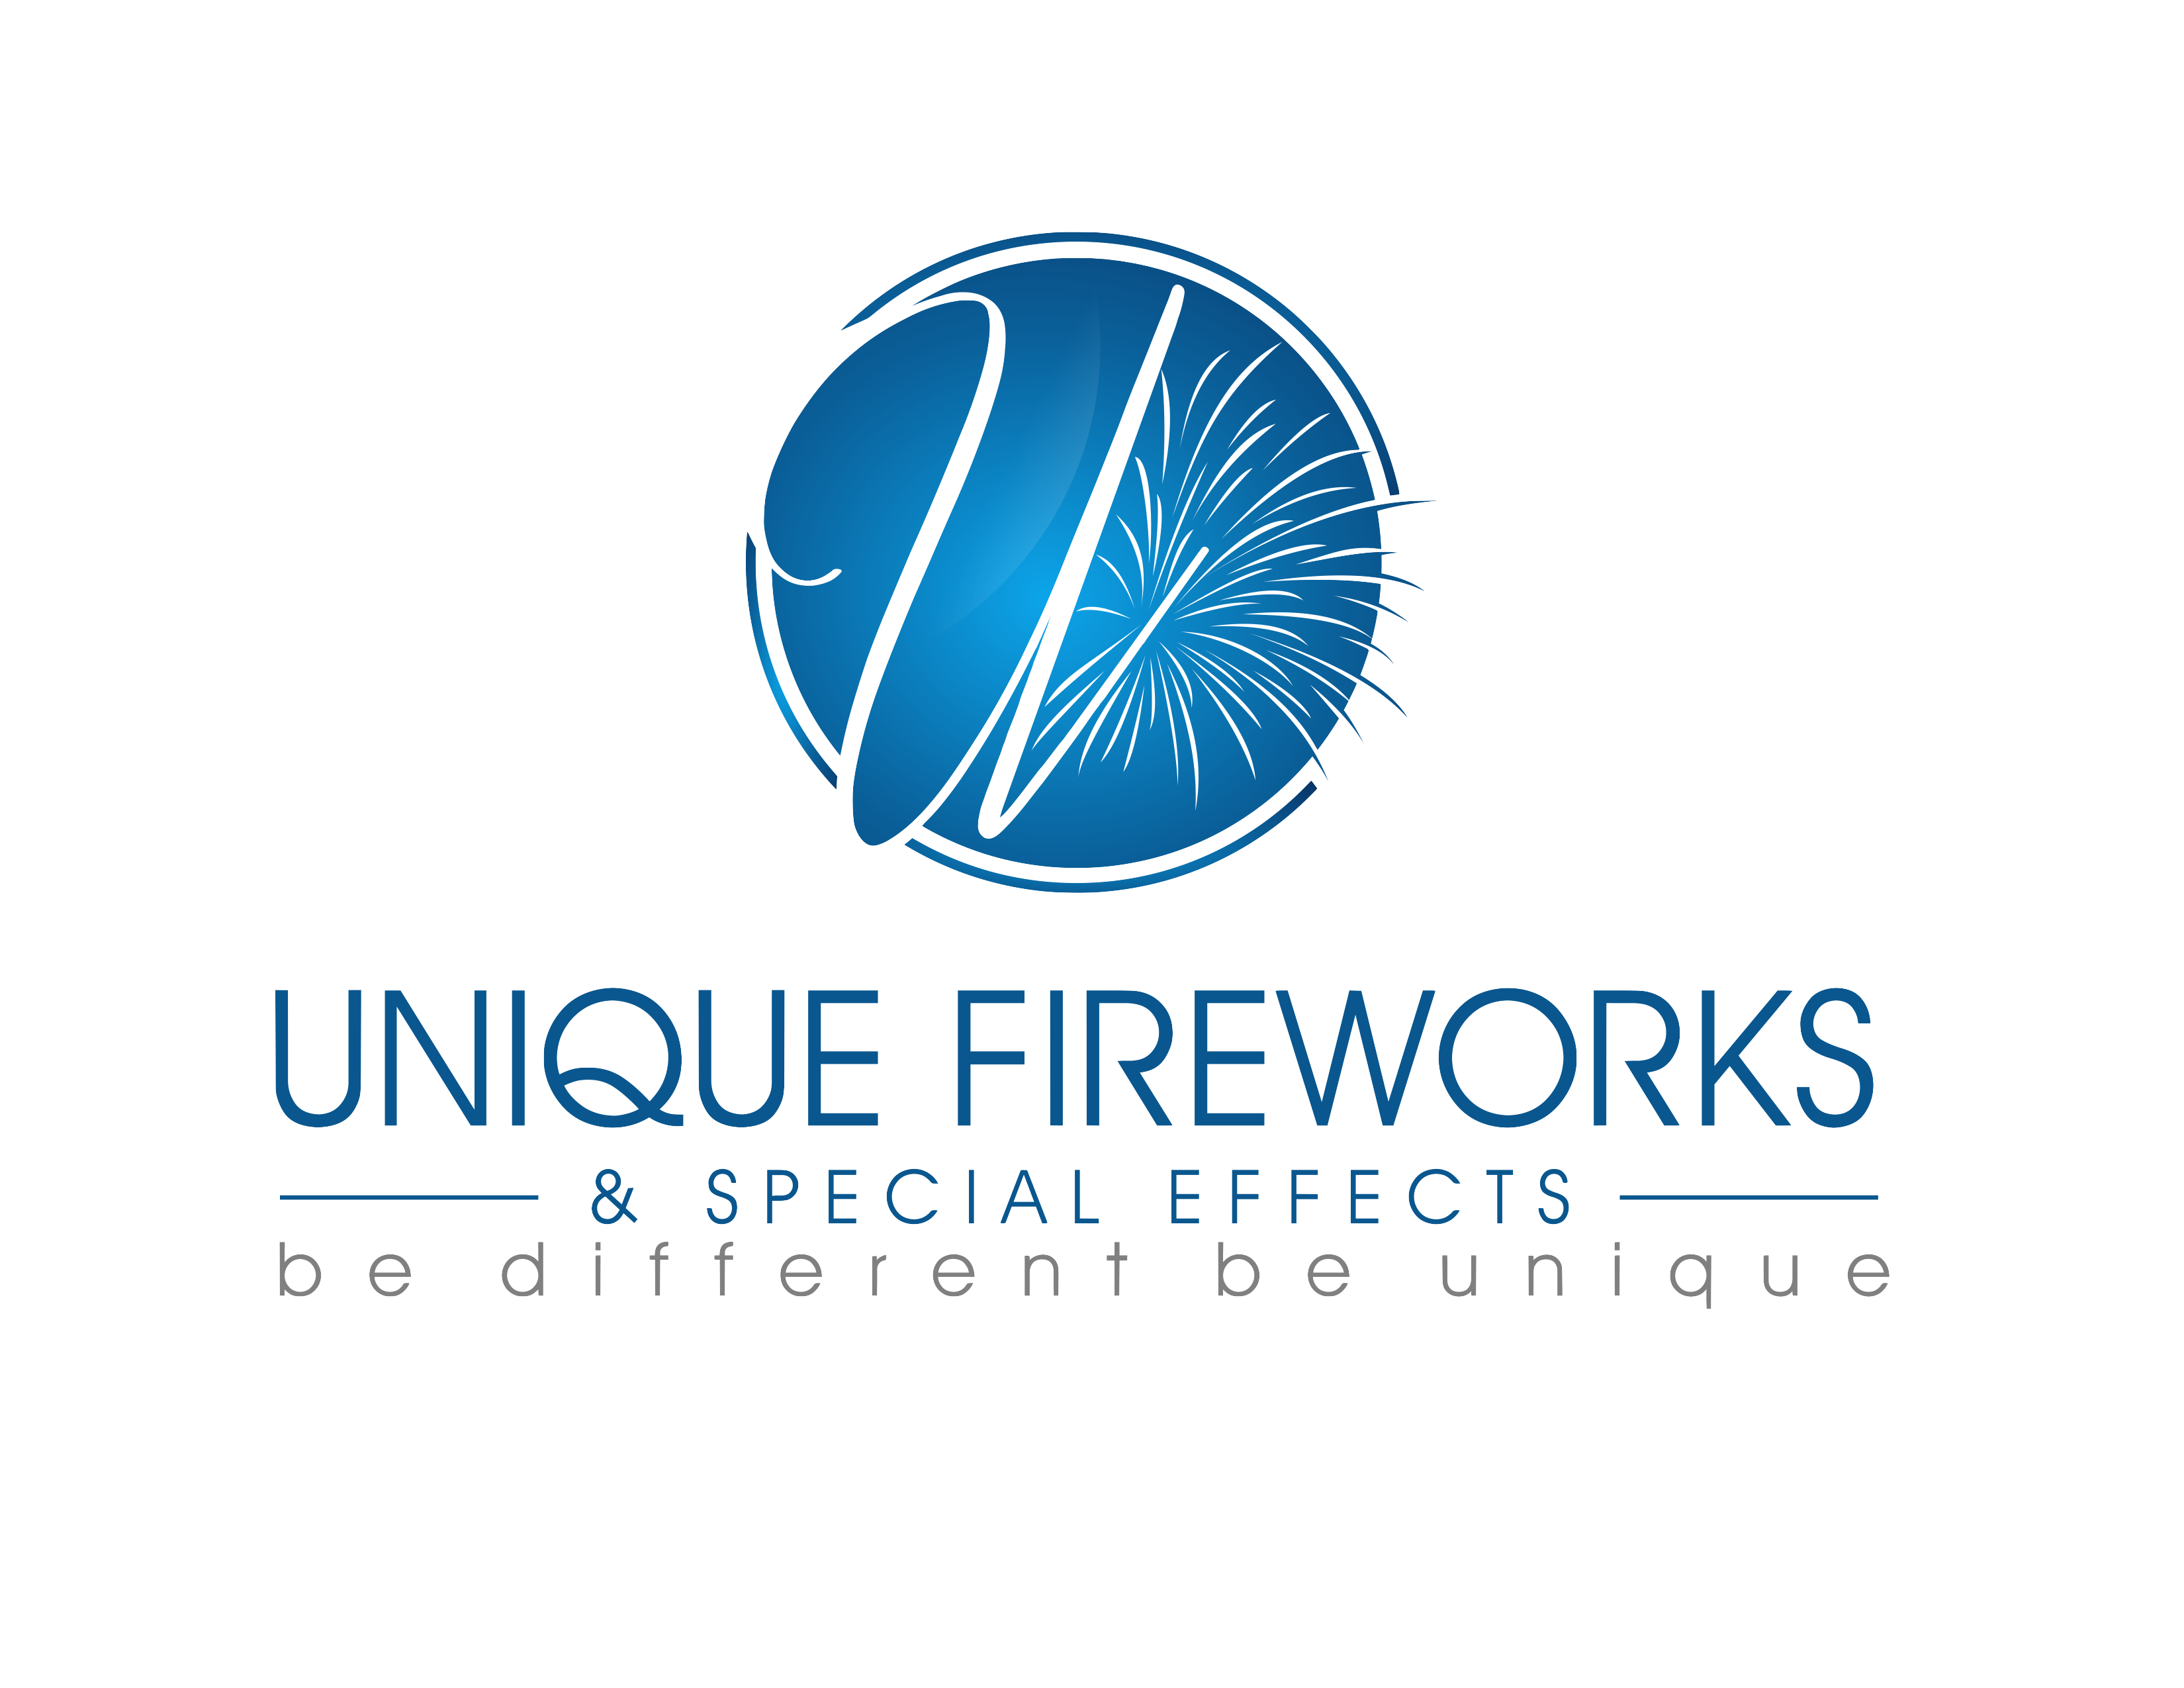 Unique fireworks & special effects icon